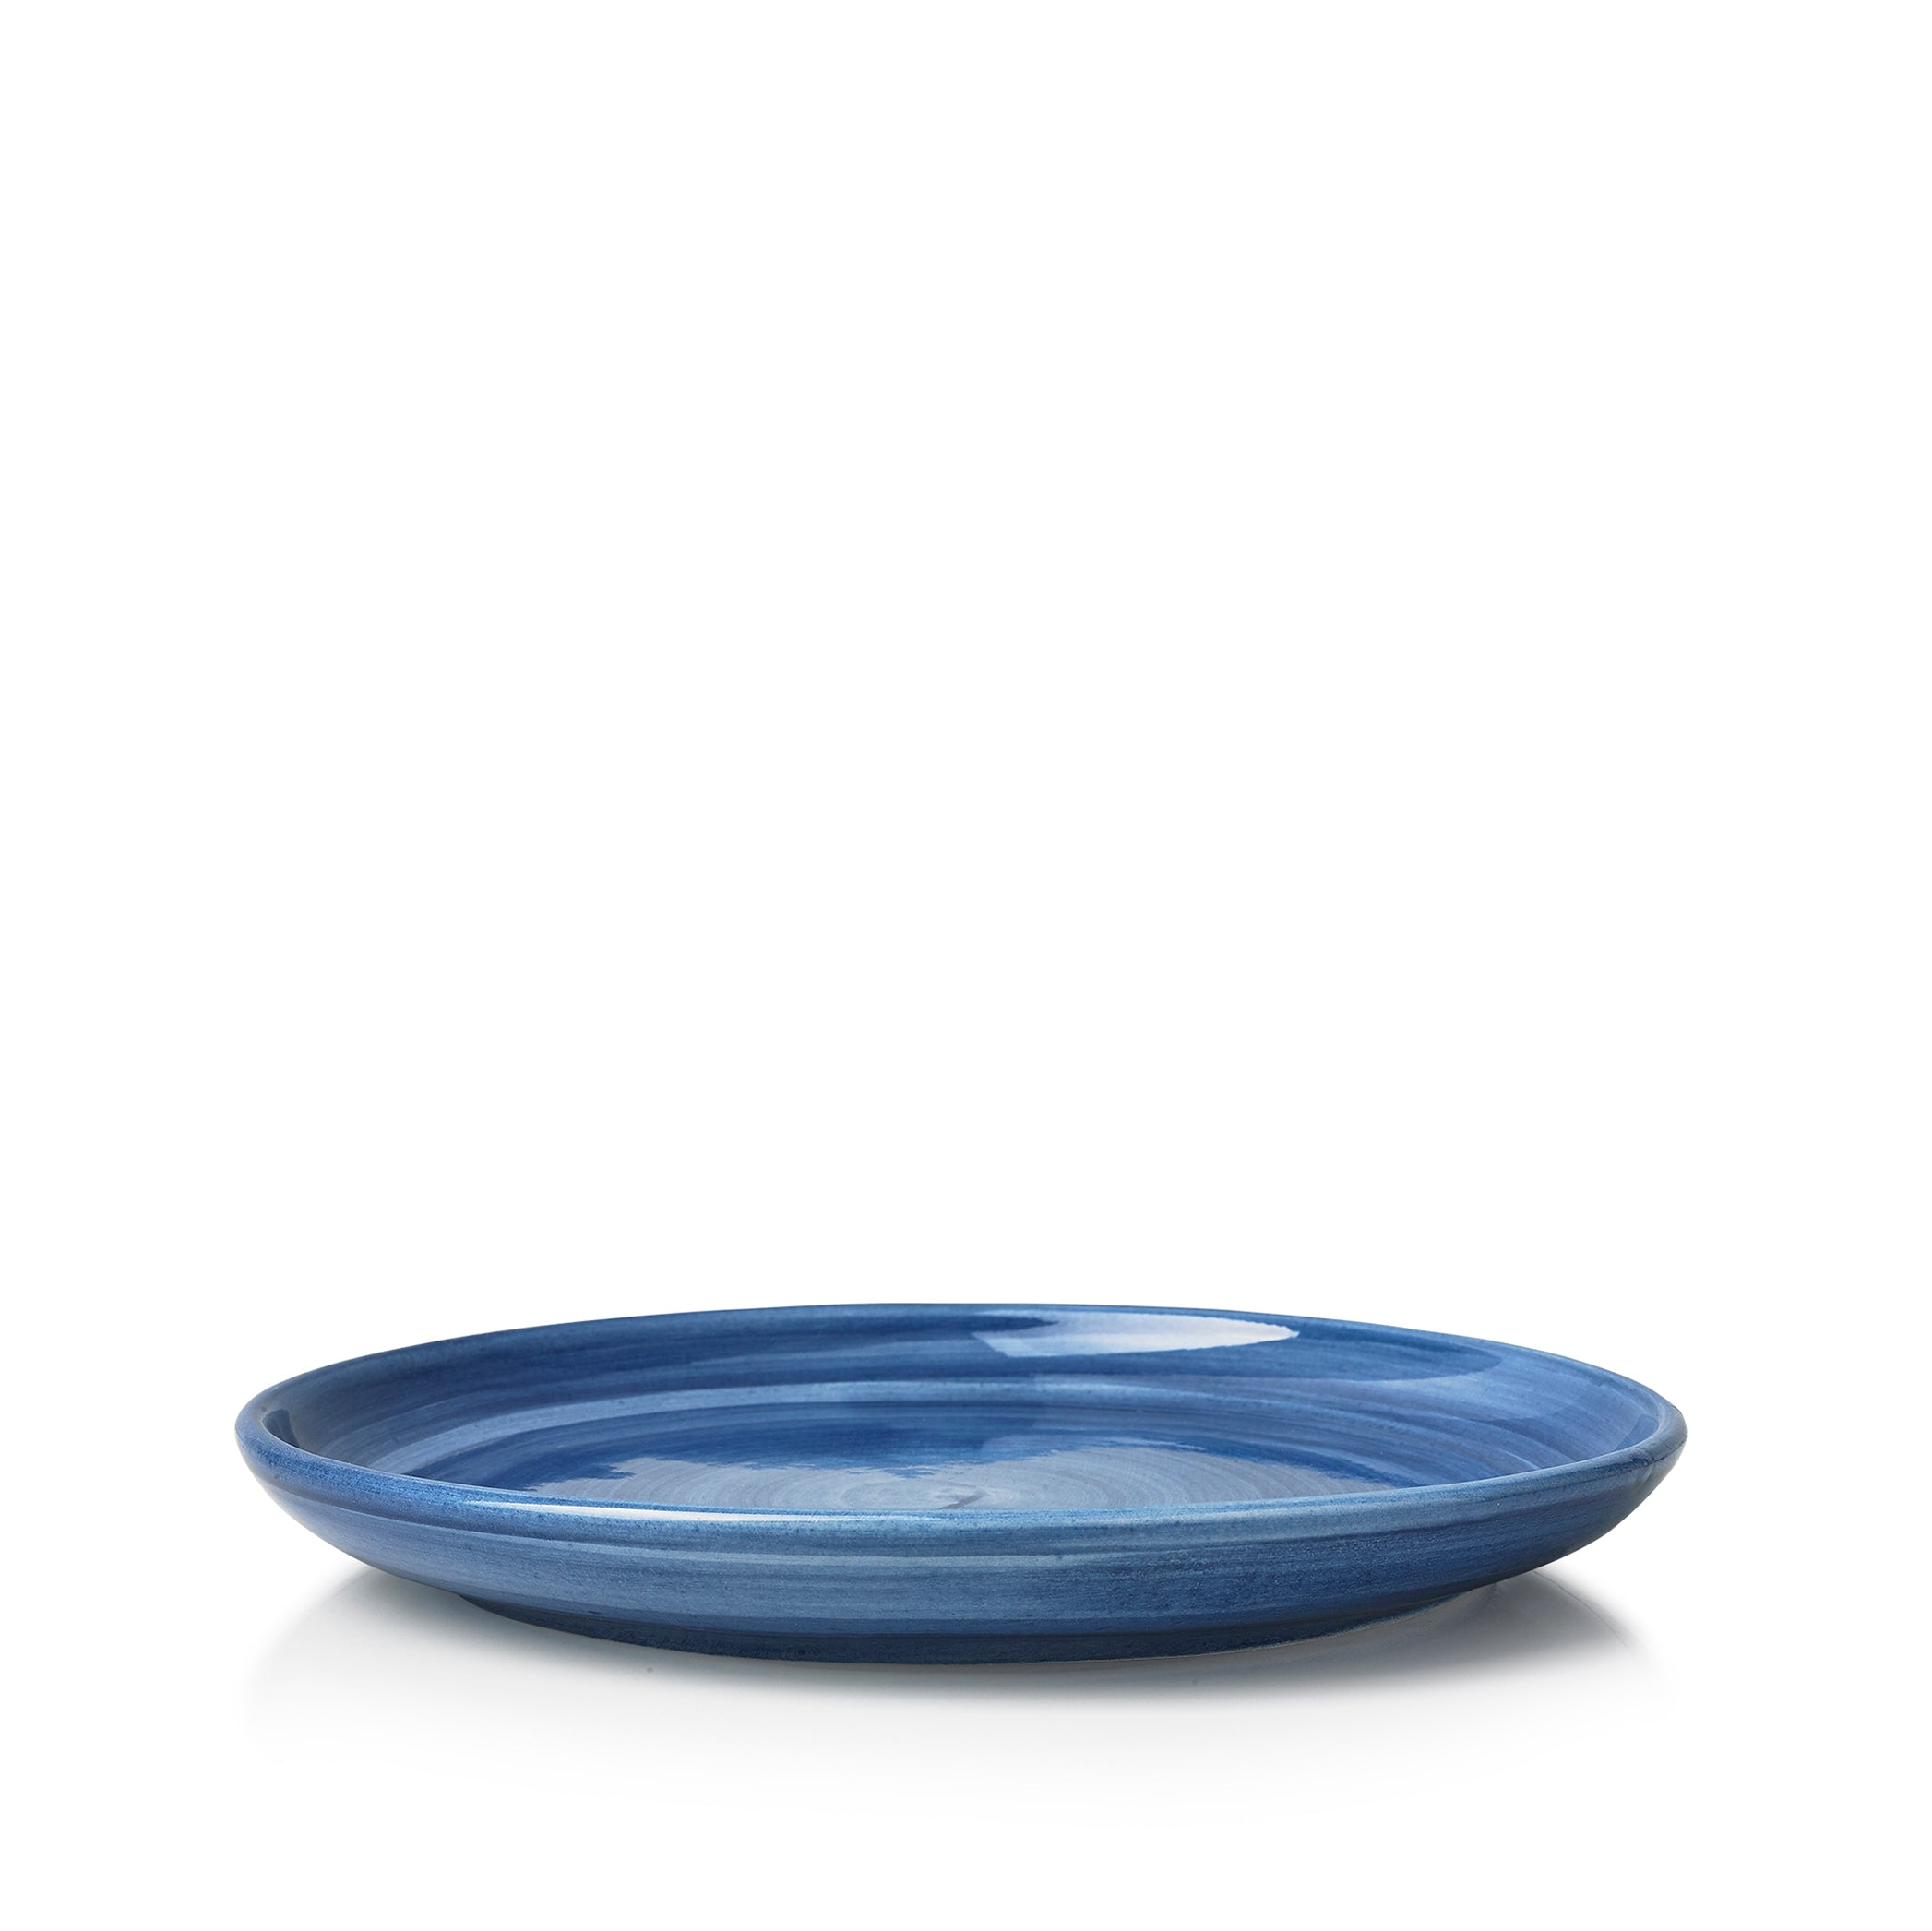 "S&B ""La Couronne"" 20cm Ceramic Side Plate in Blue"